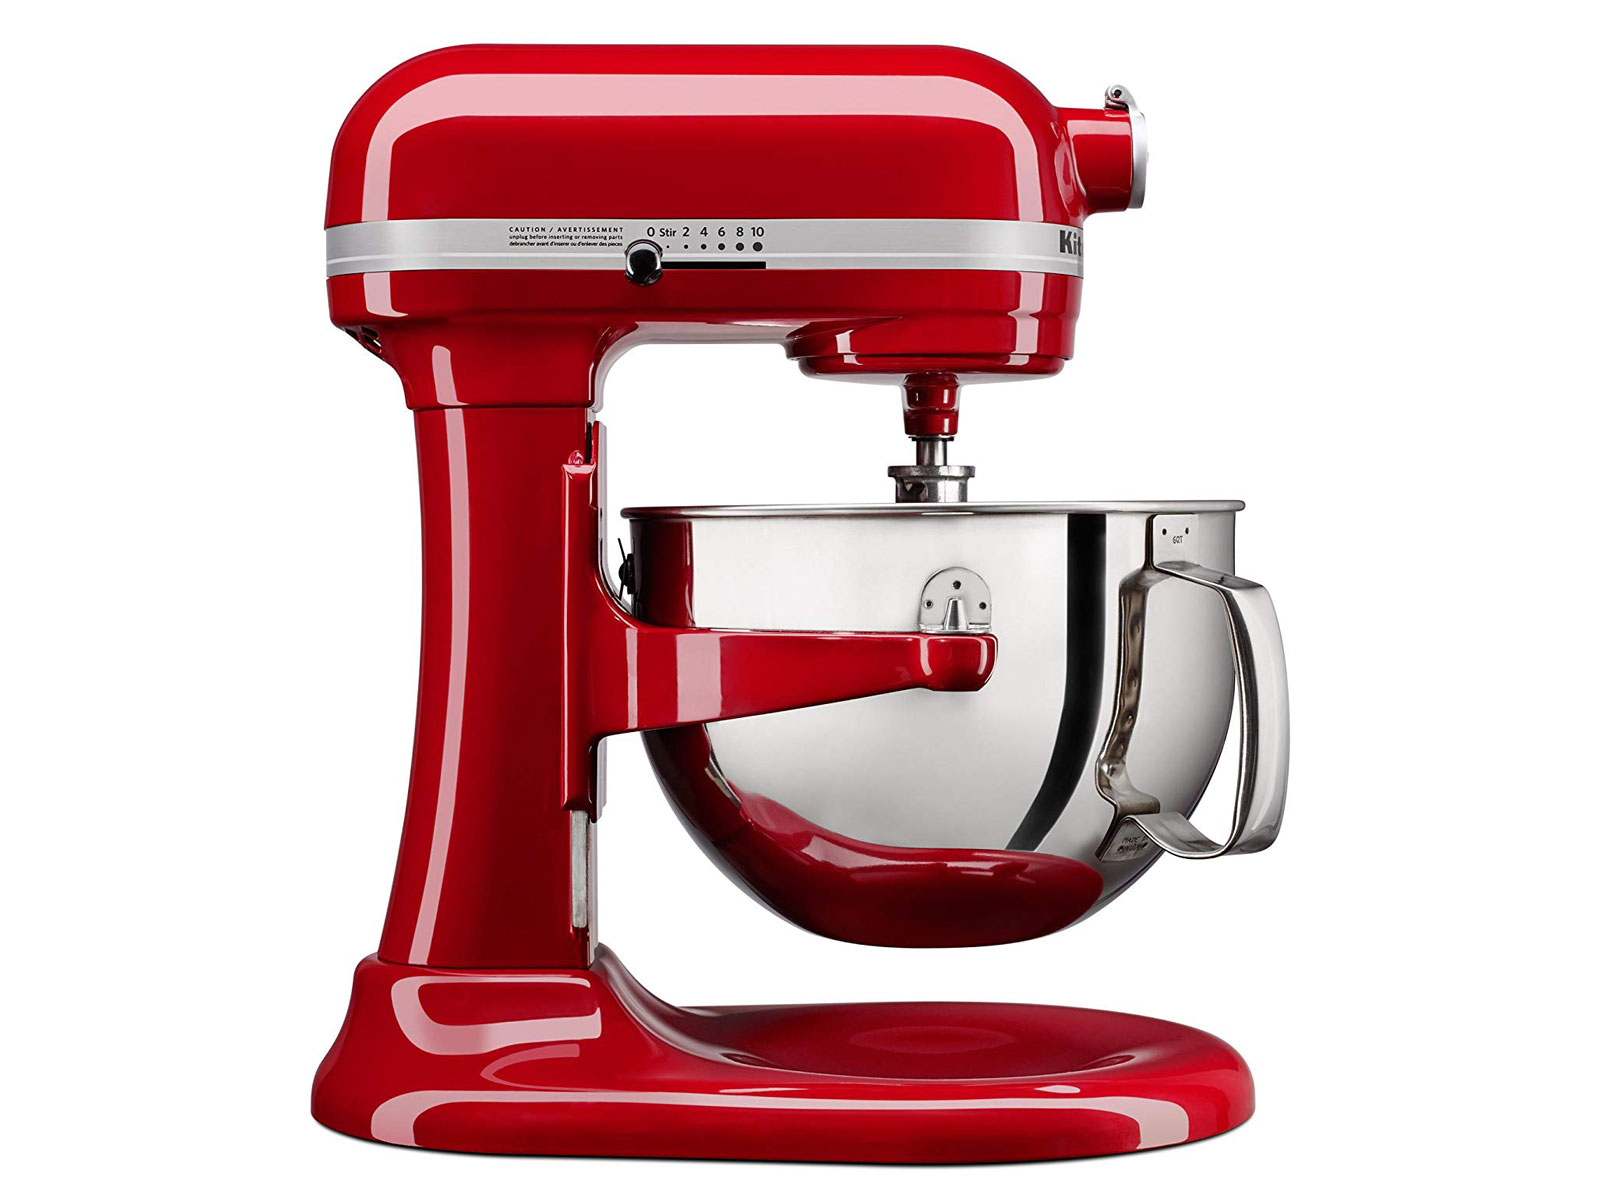 black friday deals 2018 on kitchenaid mixers lamoureph blog. Black Bedroom Furniture Sets. Home Design Ideas